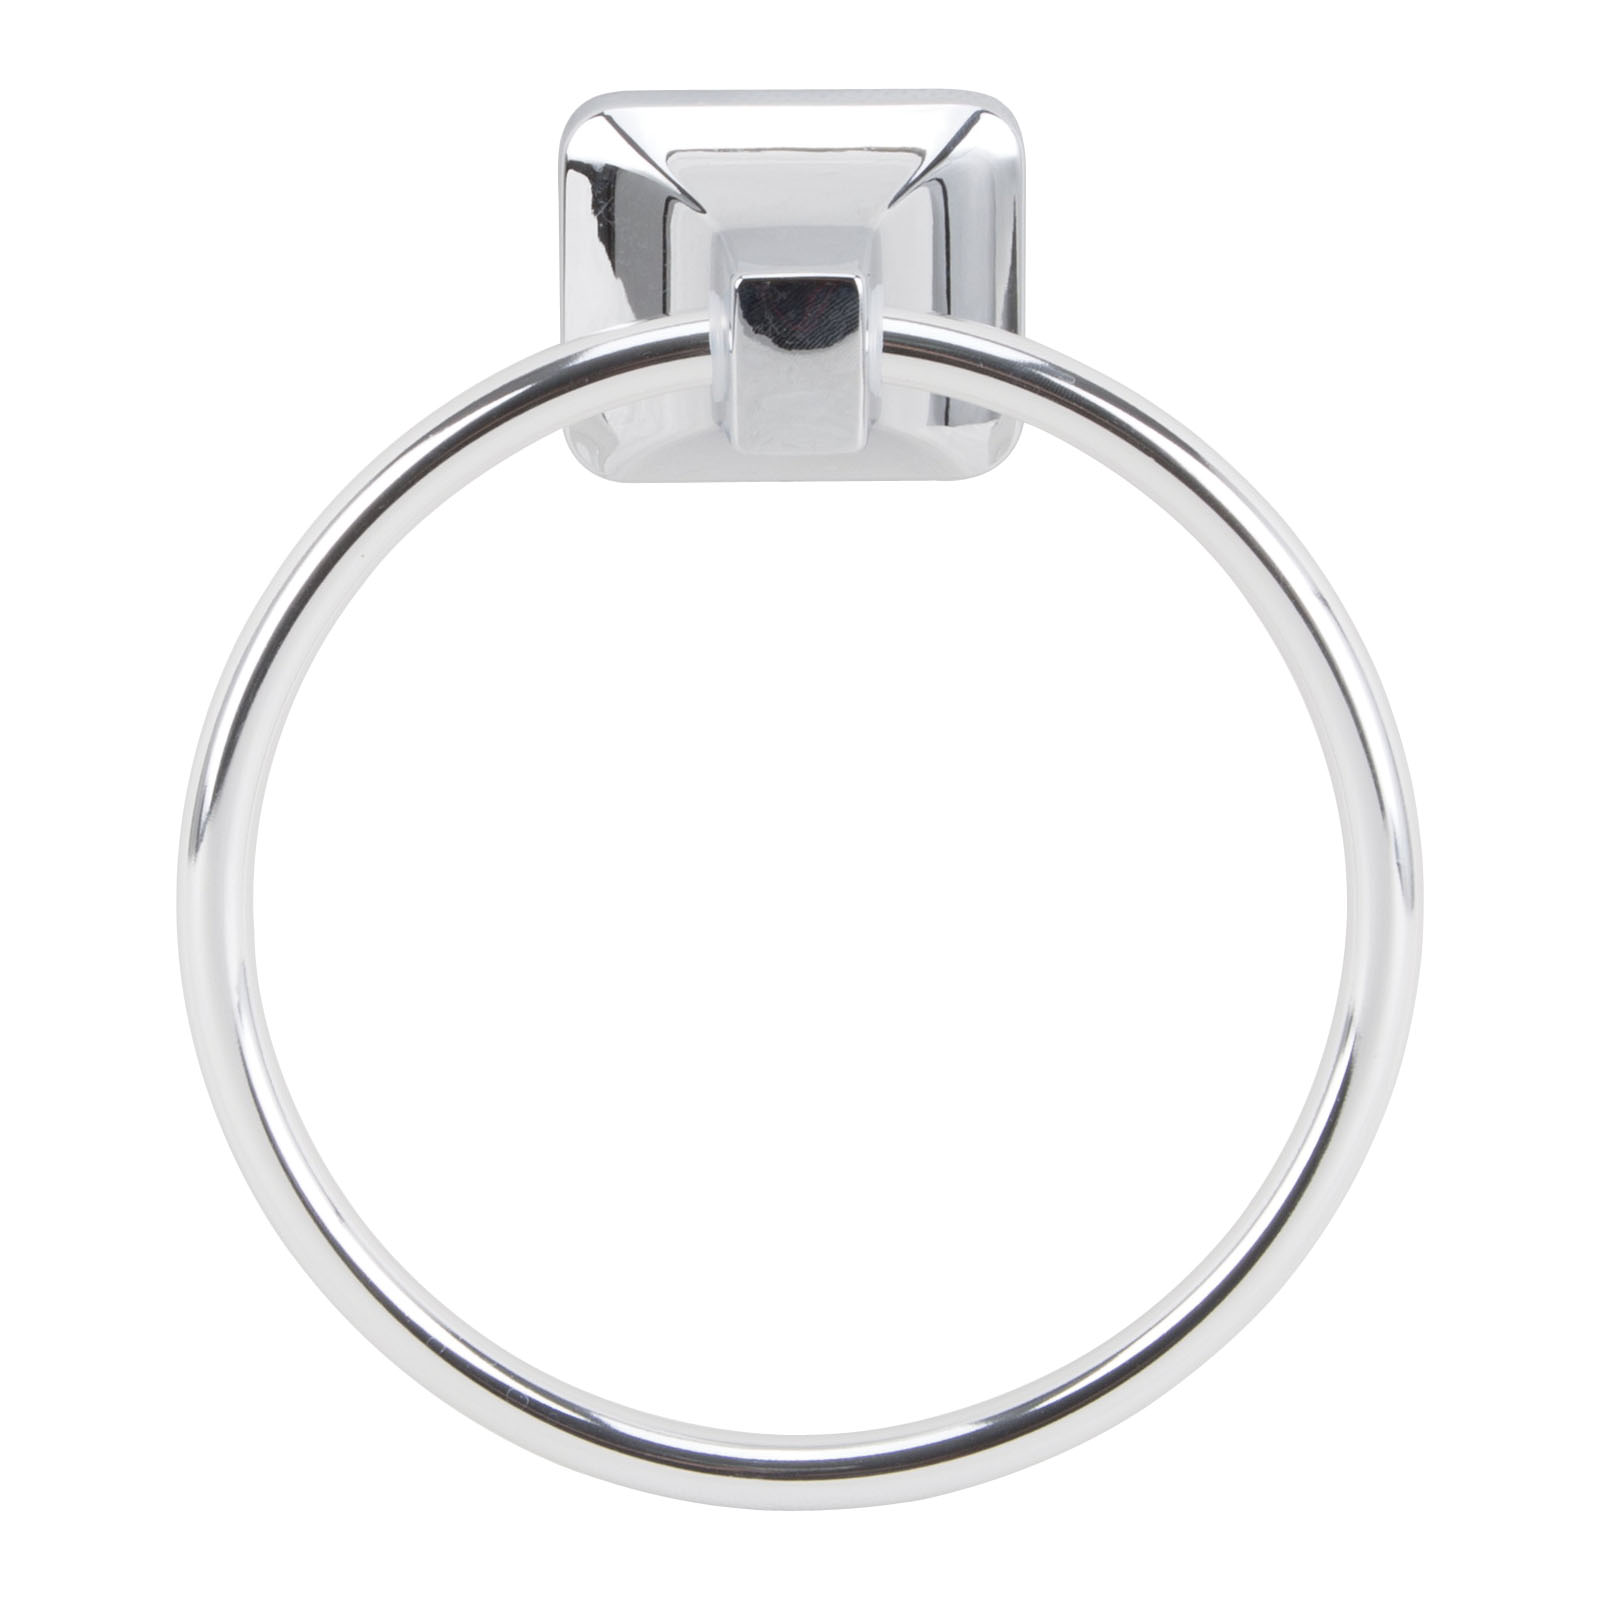 Picture of Boston Harbor CSC 8586-3L Towel Ring, Aluminum, Chrome, Screw Mounting